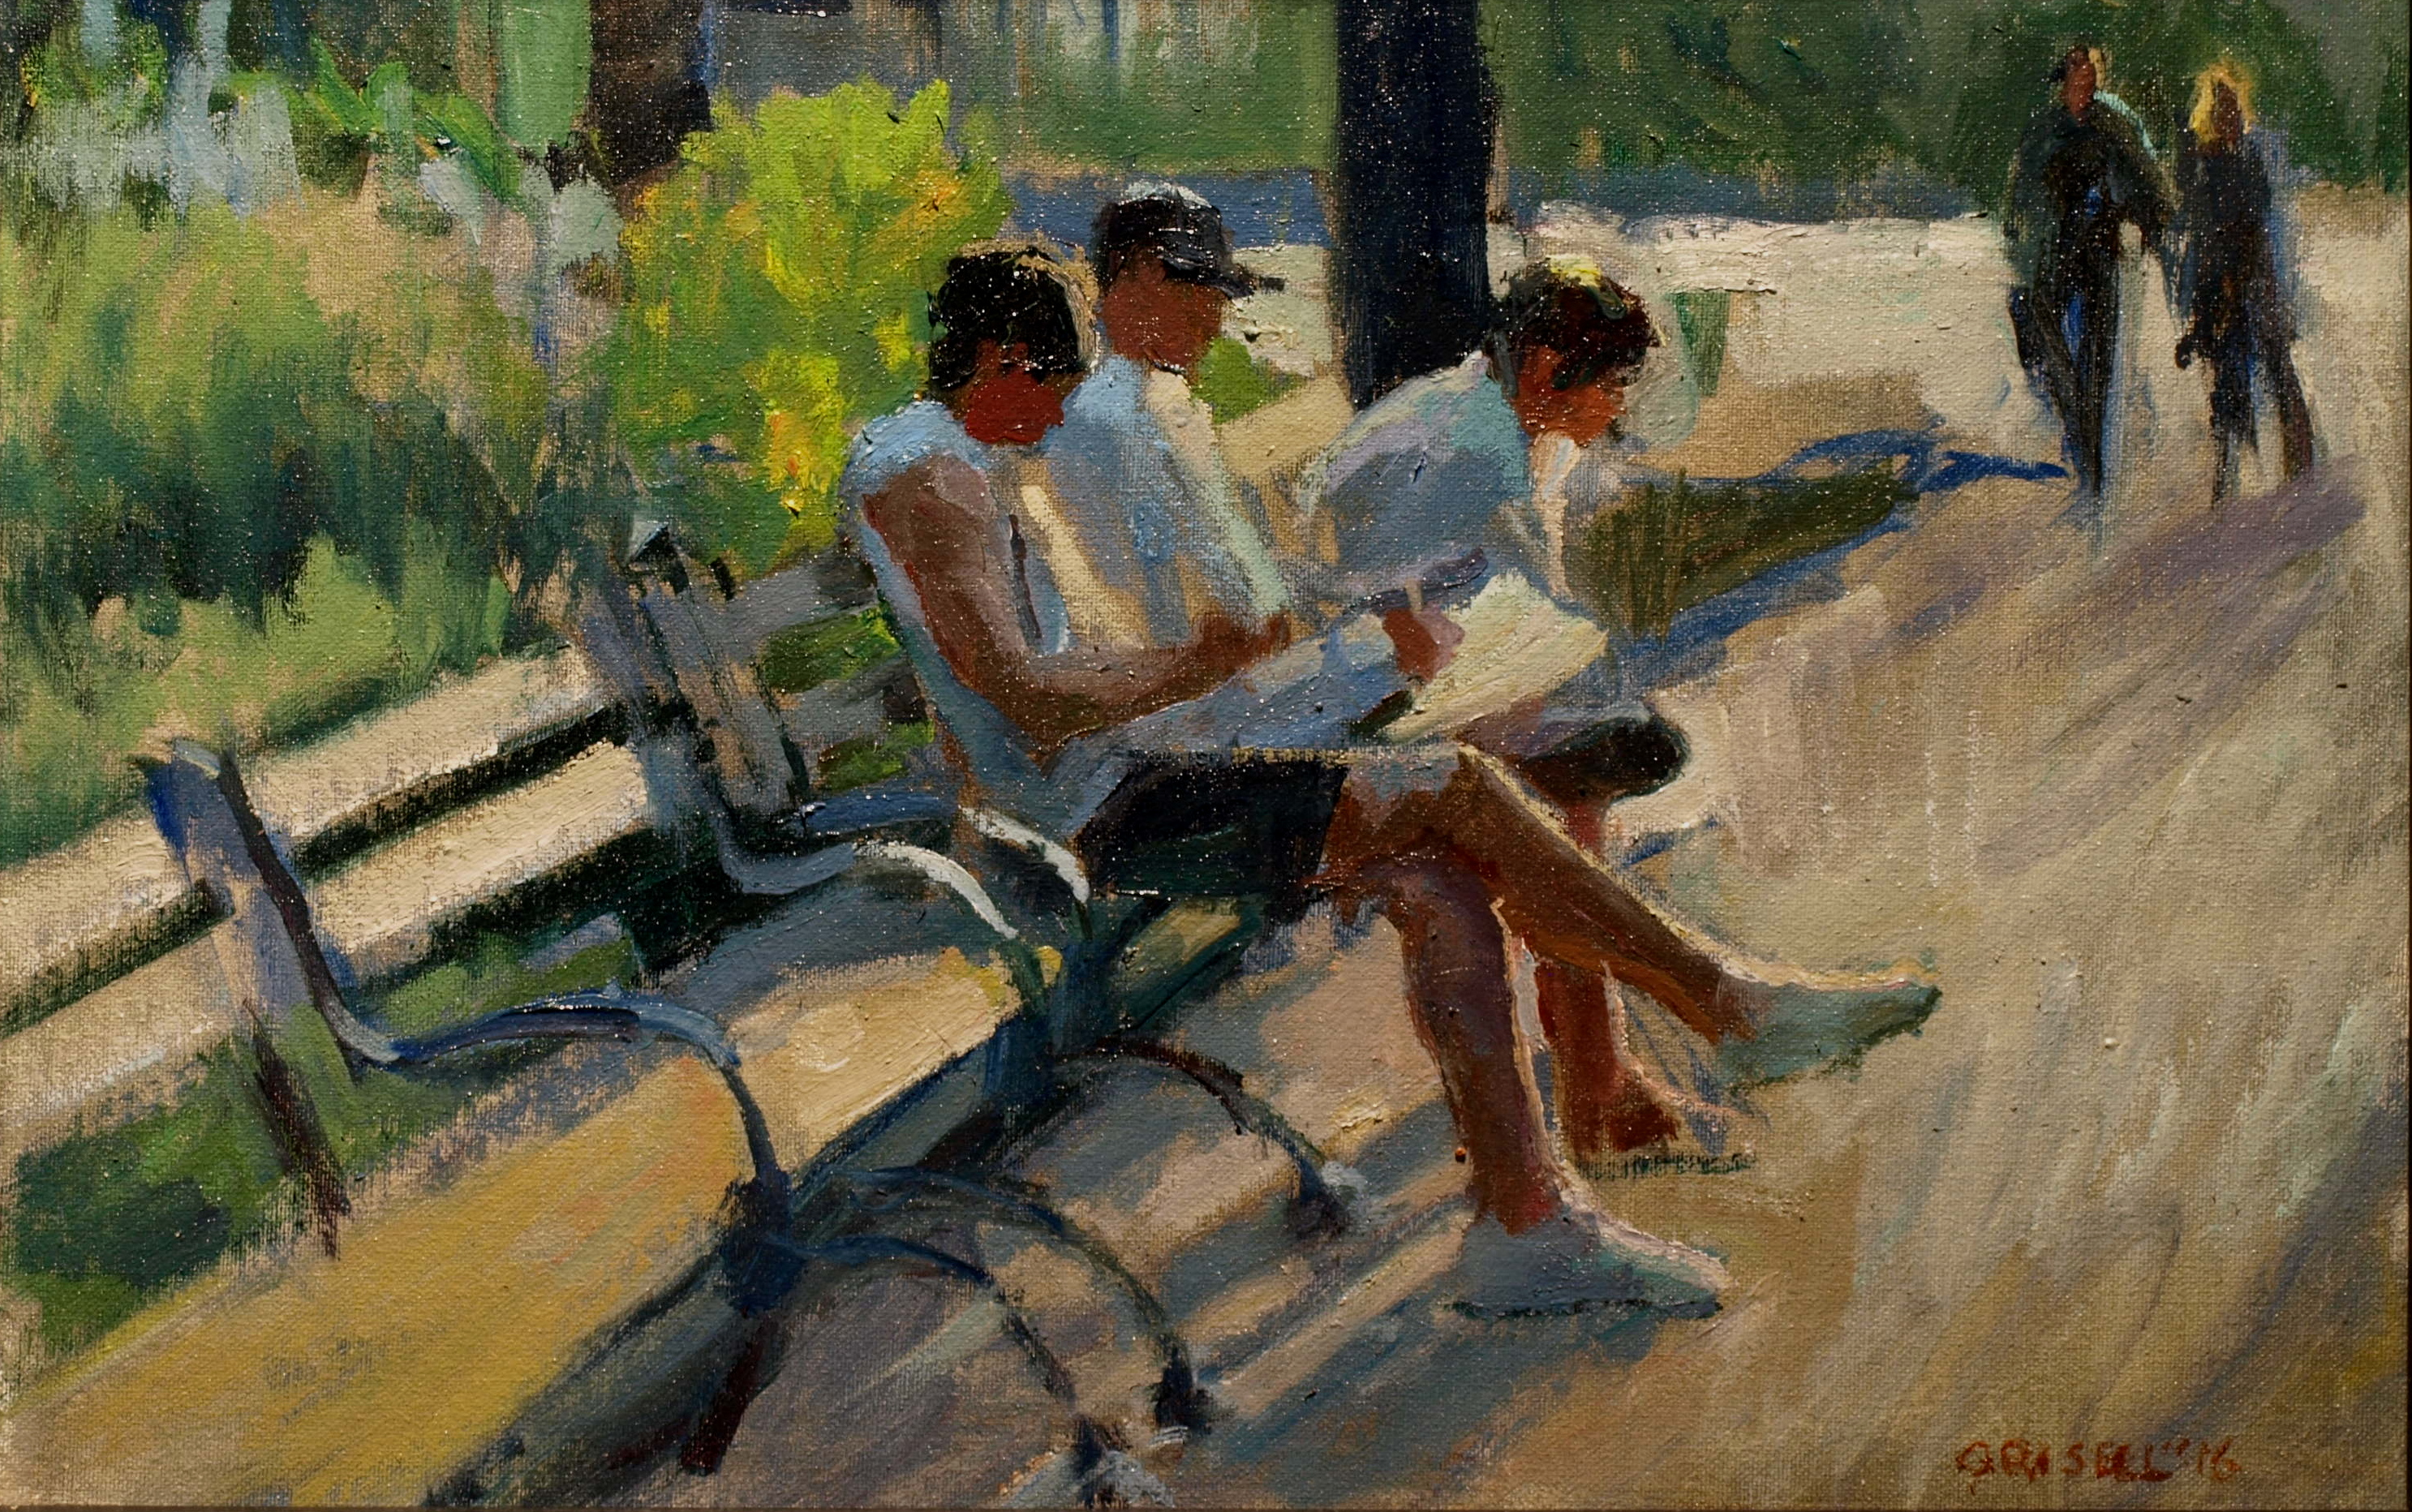 In the Park, Oil on Canvas on Panel, 12 x 18 Inches, by Susan Grisell, $300